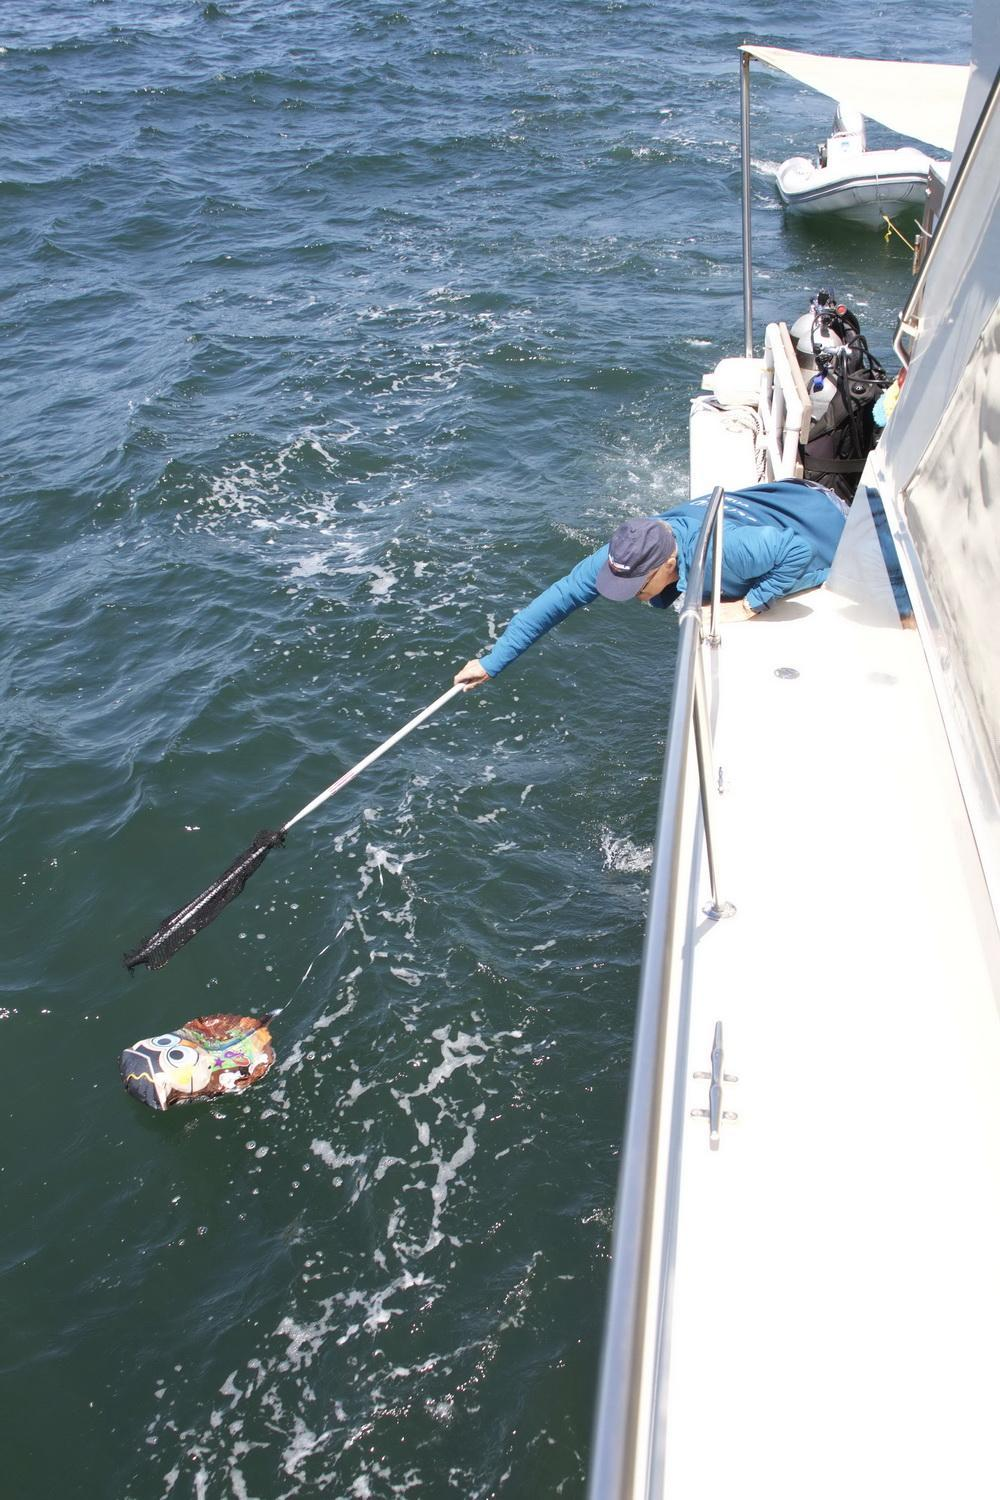 Ocean Defenders removing Mylar balloon debris from the sea